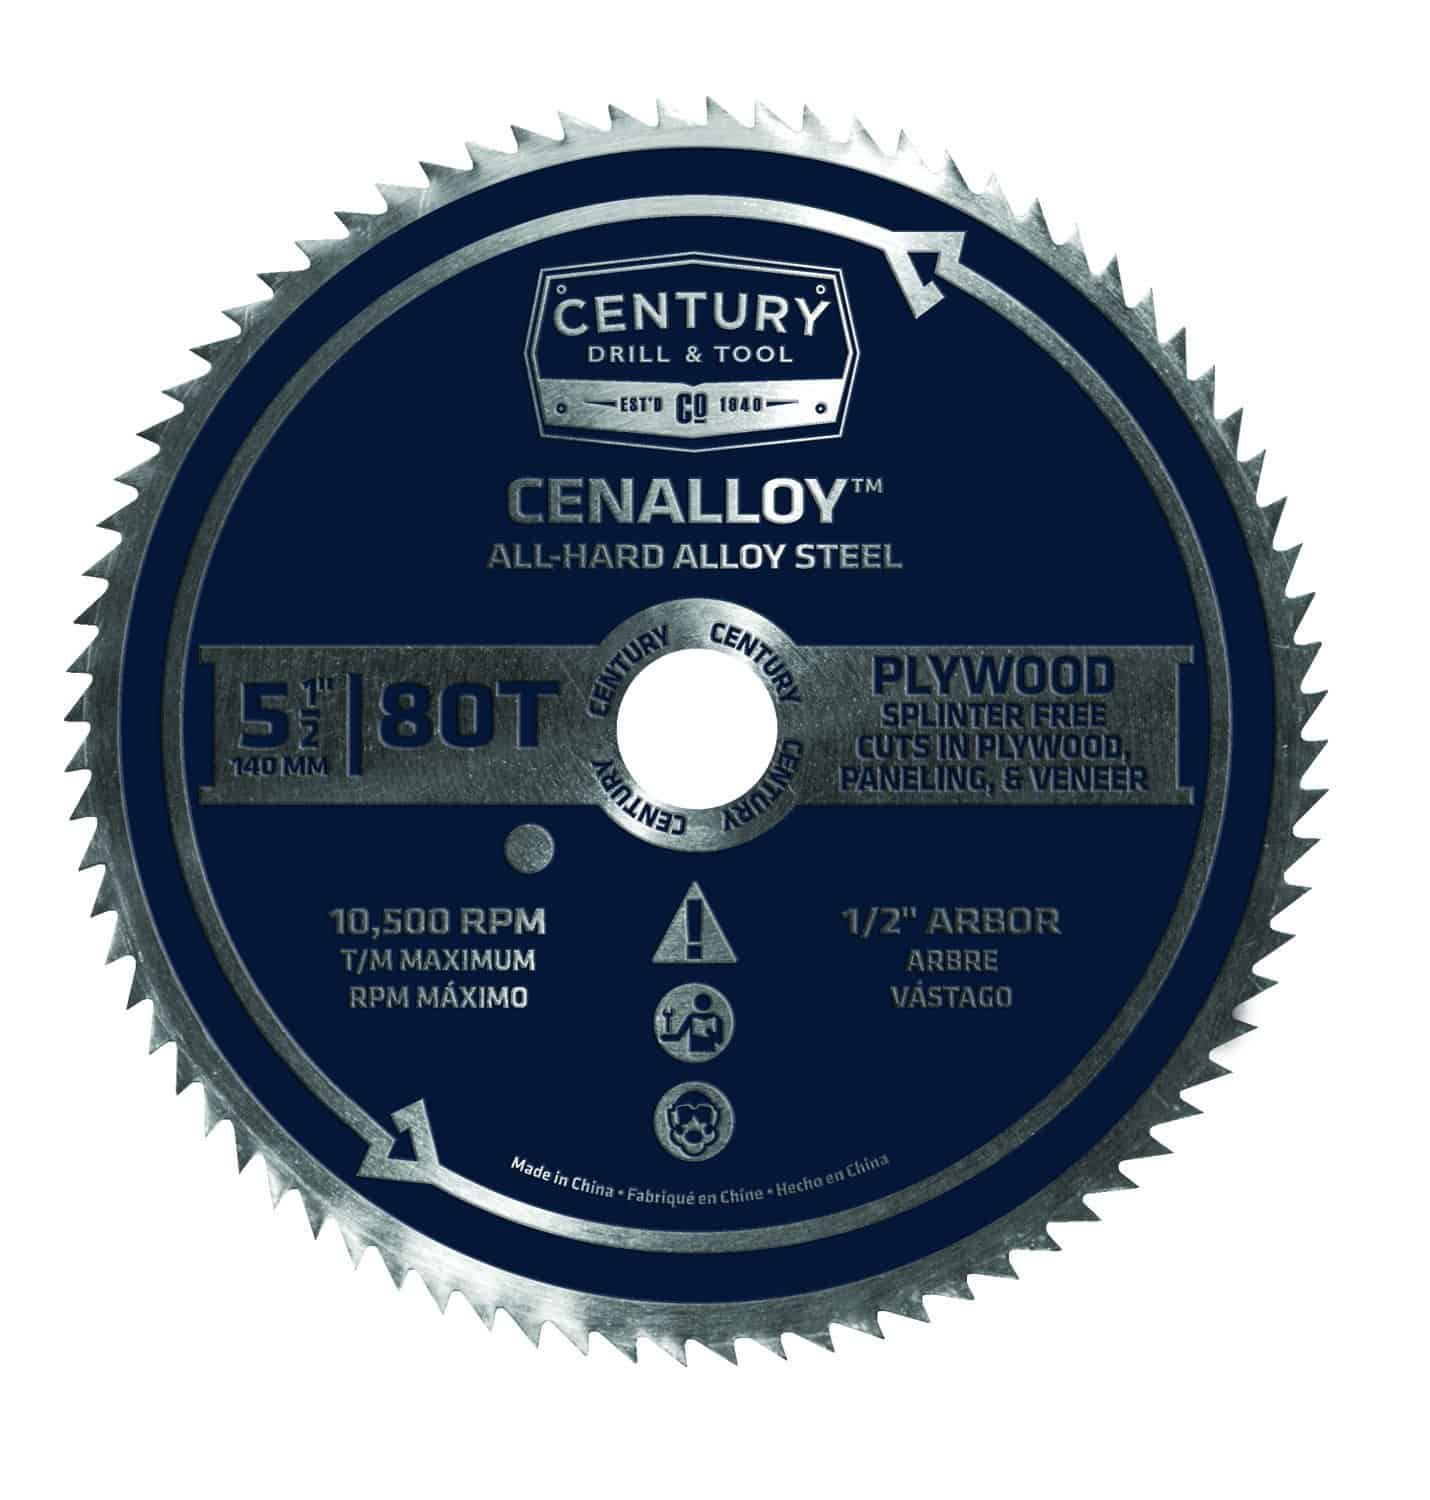 Cenalloy all hard steel circular saw blade.